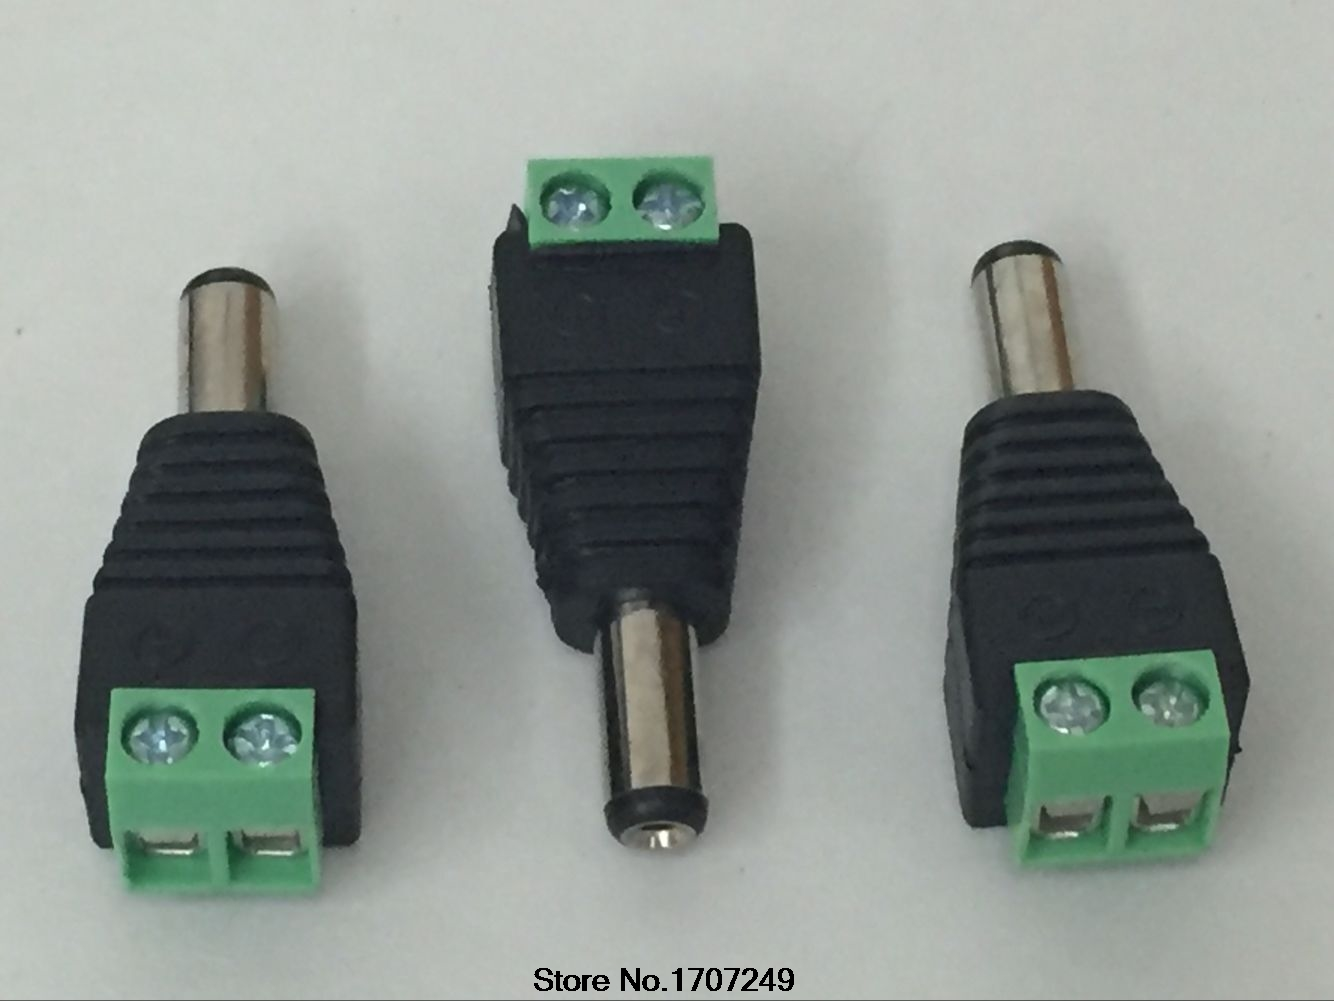 Free Shipping 10pcs/Lot 5.5mm x 2.1mm CCTV Male DC Jack DC Connector Power Plug for Security CCTV Camera System